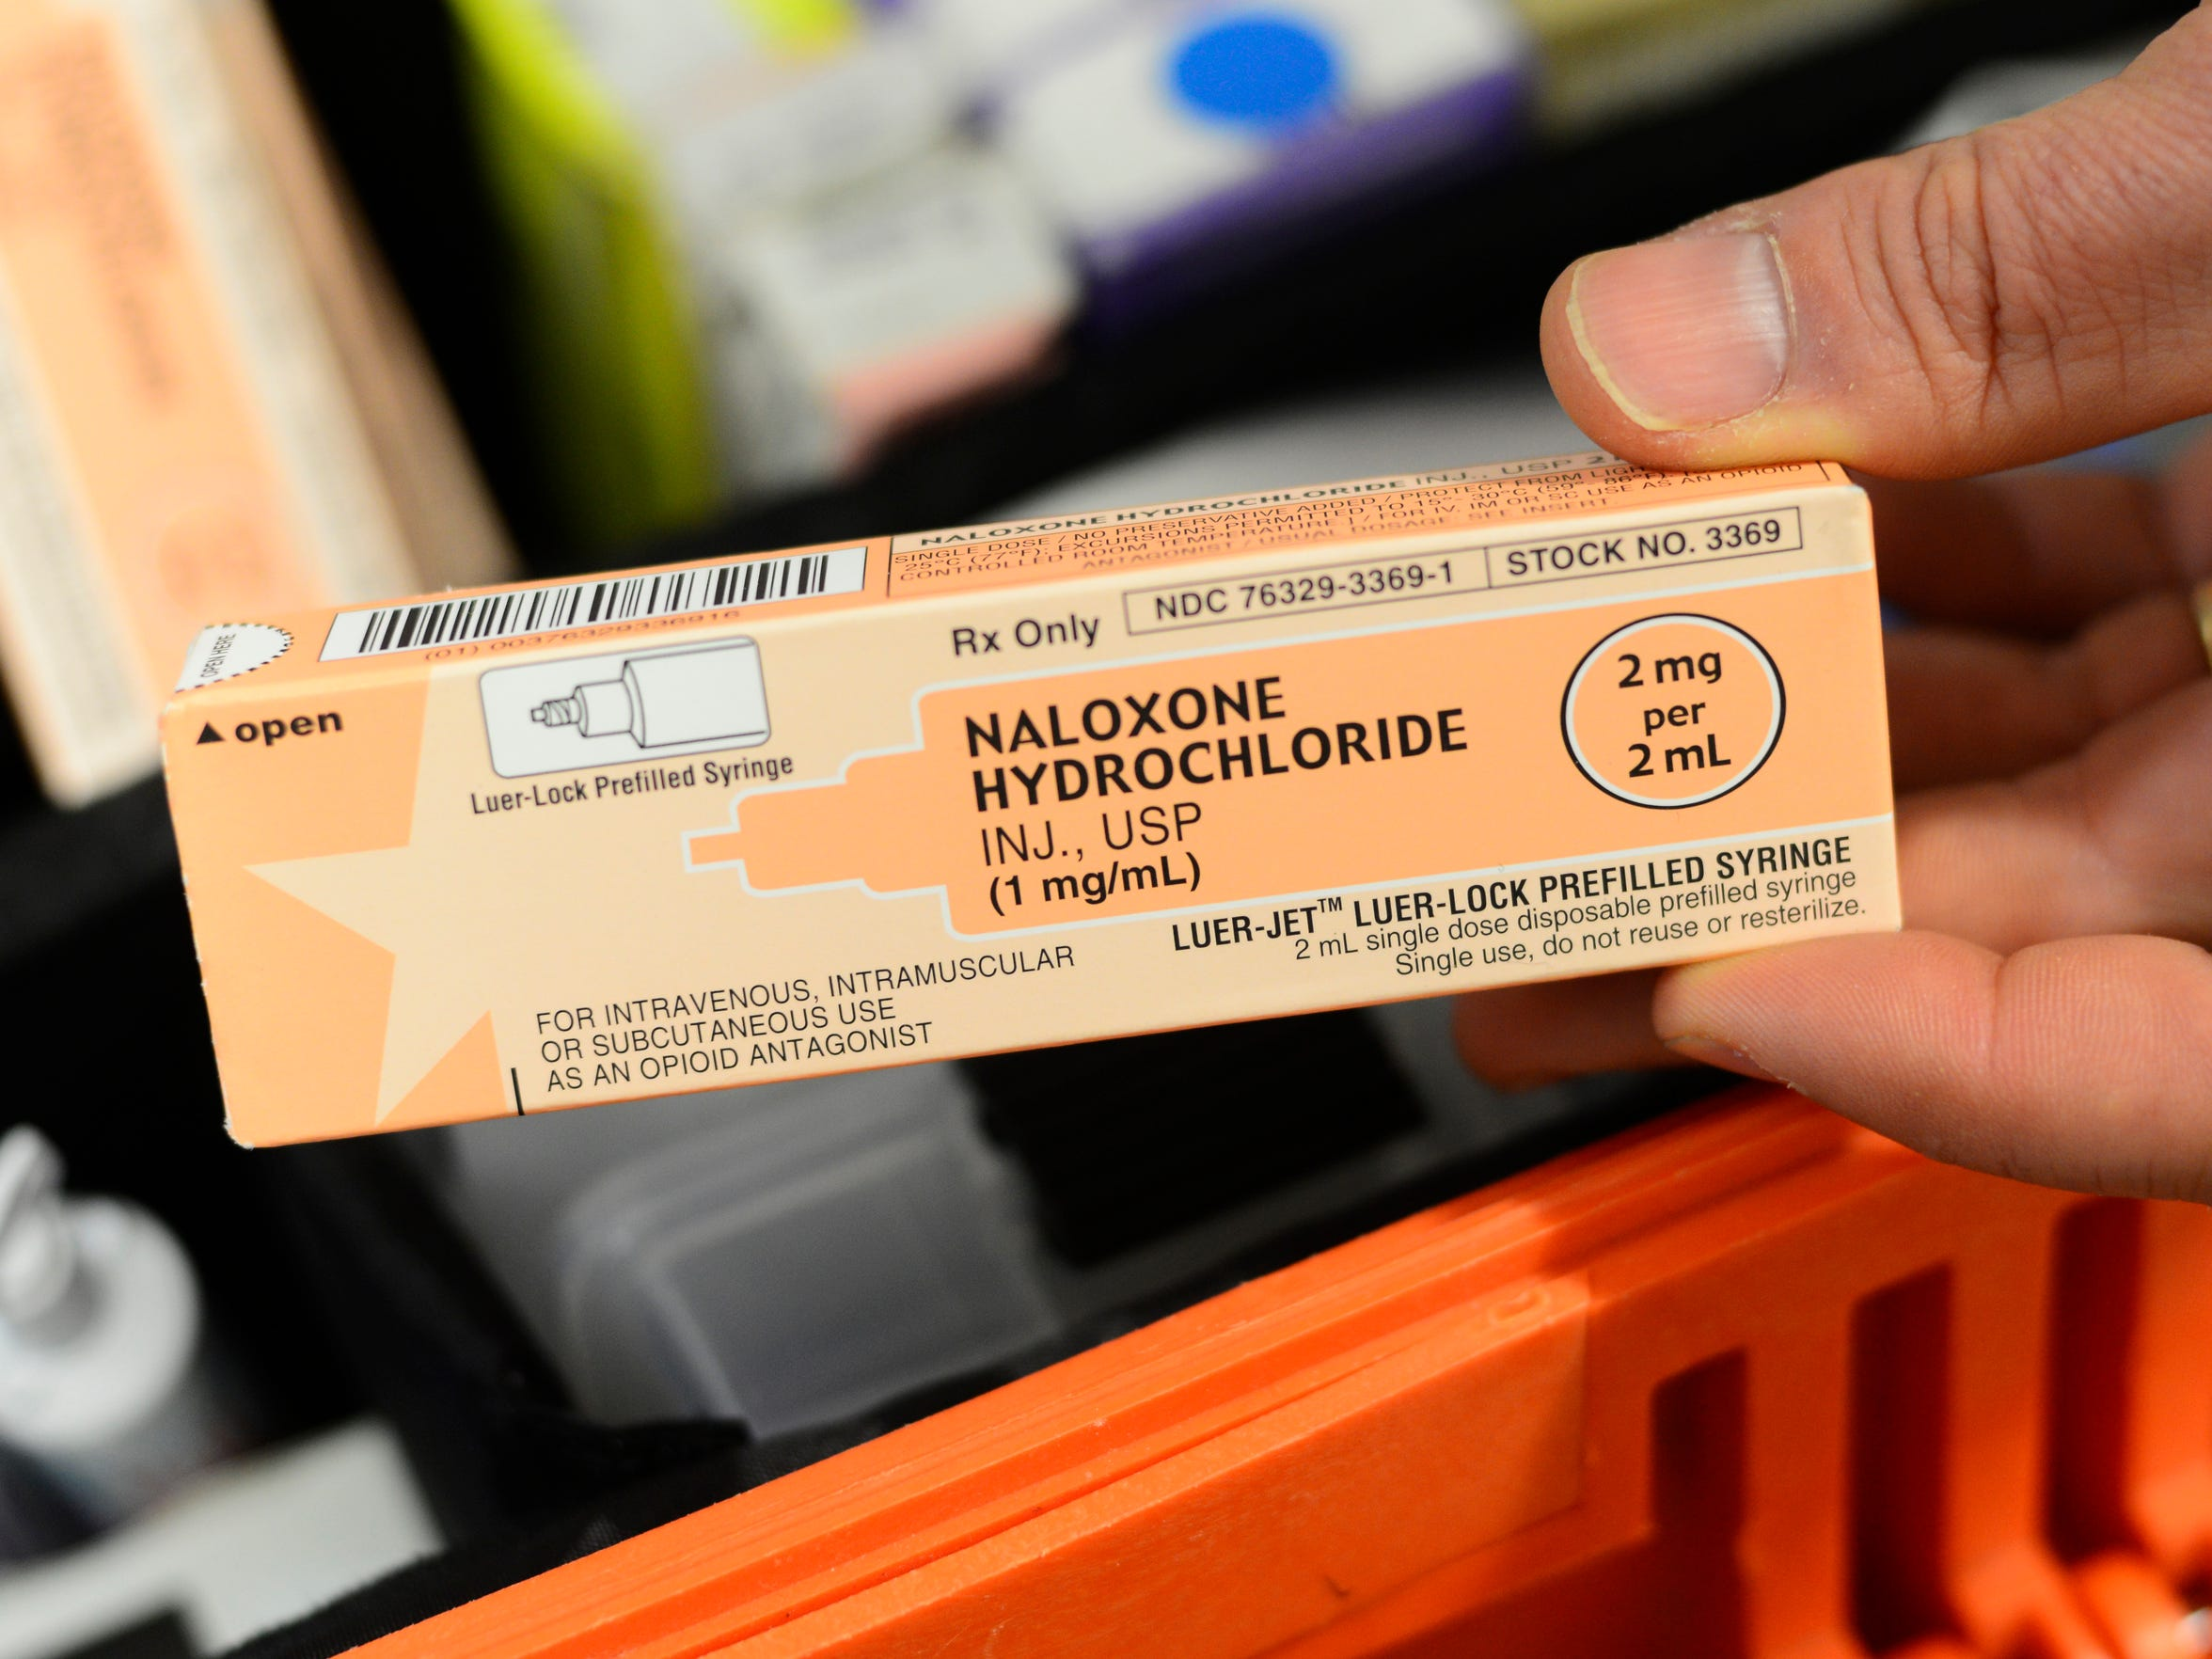 EMS uses the drug naloxone to revive people overdosing on heroin.